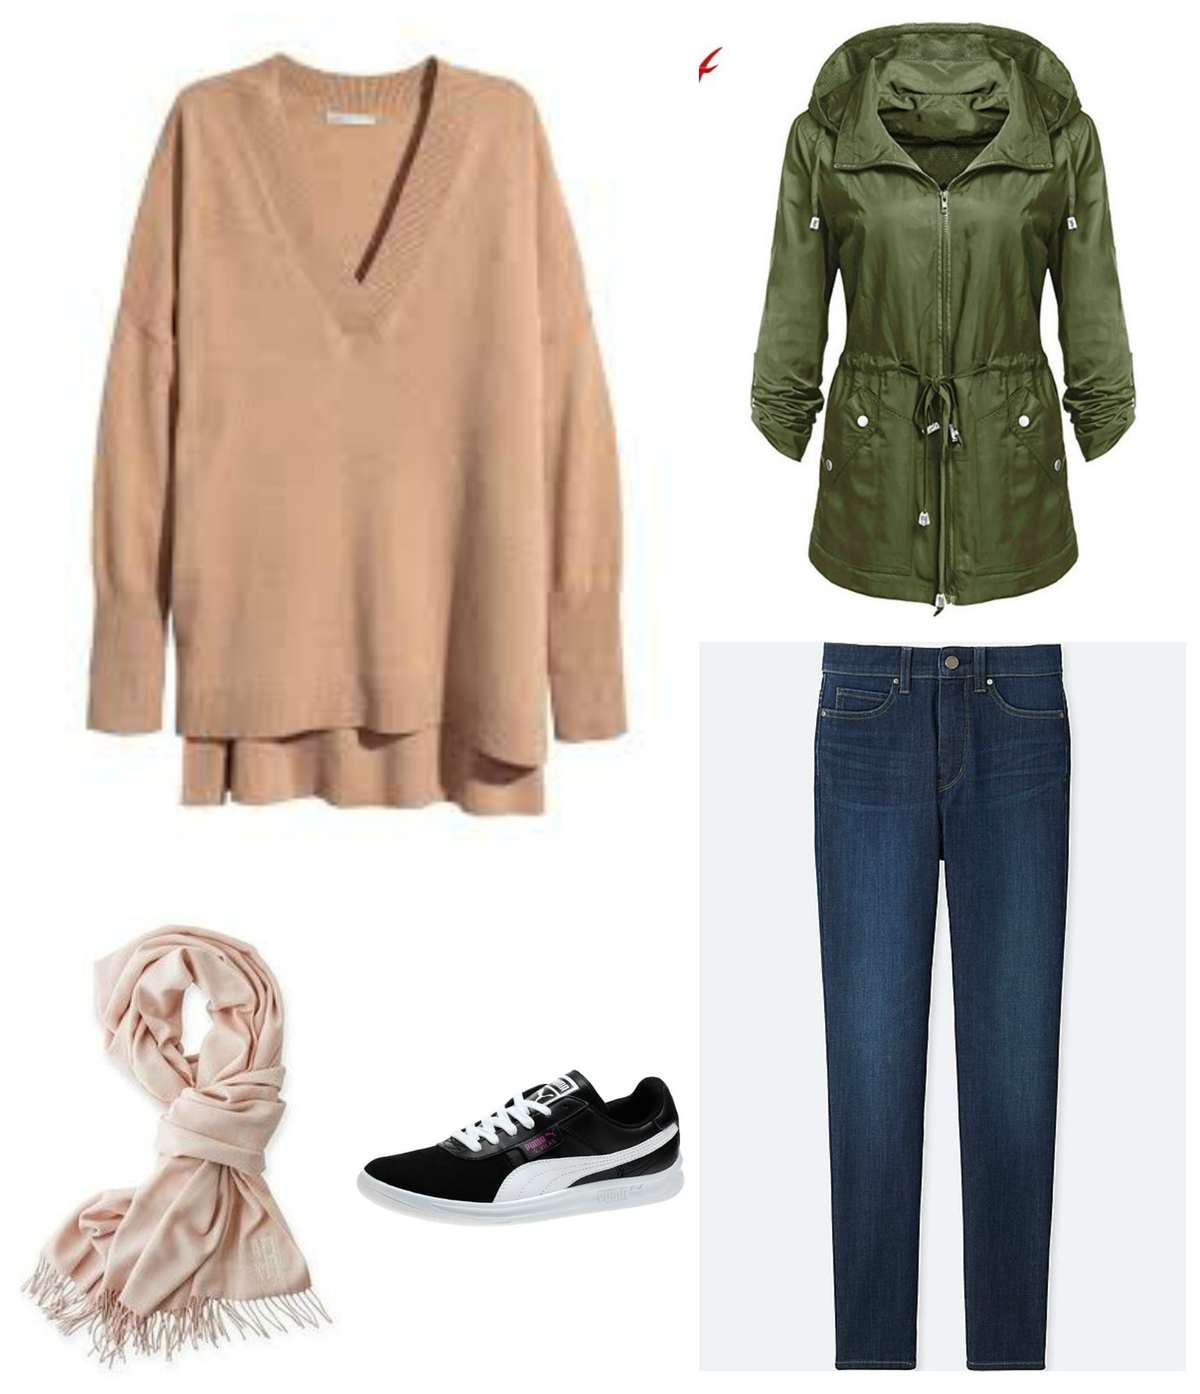 A look created from the travel capsule wardrobe - camel oversized sweater with slim jeans, an olive green anorak, cream pashmina, and black Puma sneakers.